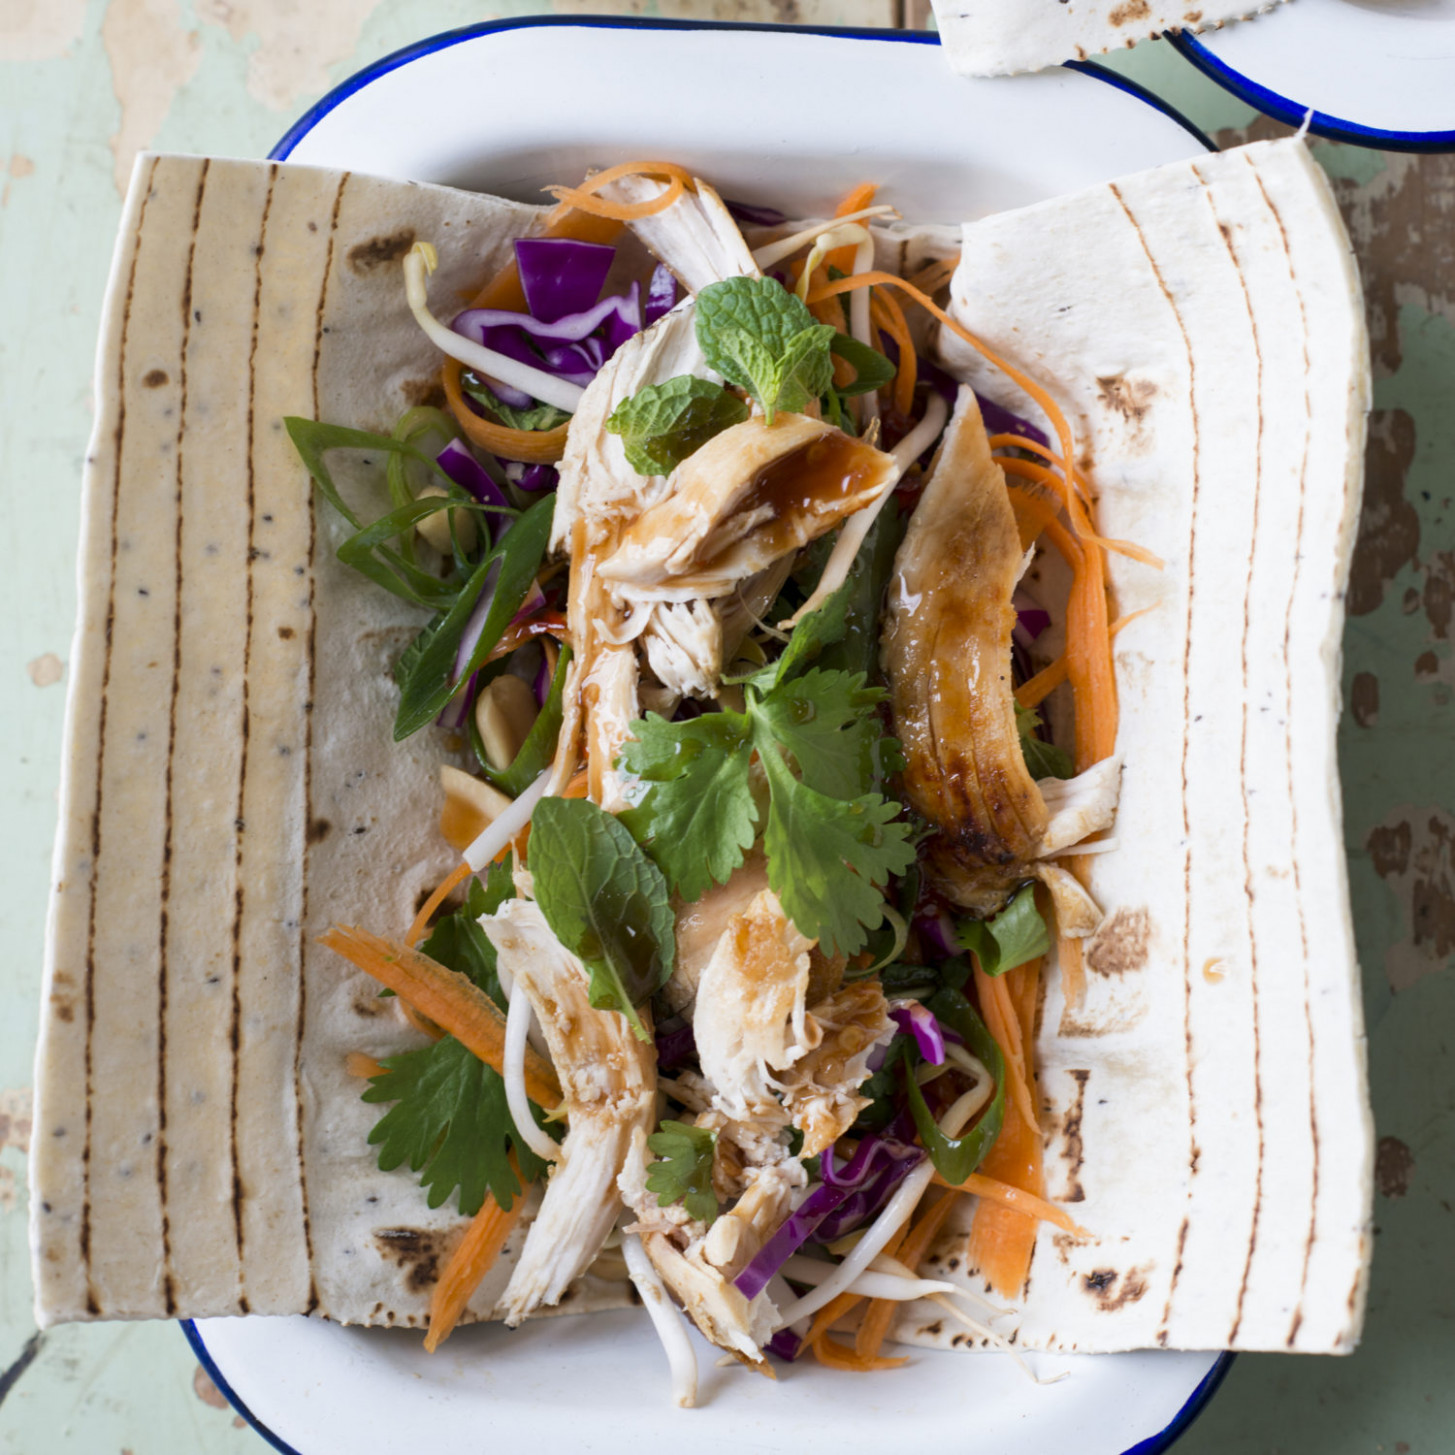 Leftover Turkey Or Chicken Asian Salad - Recipes With Leftover Chicken